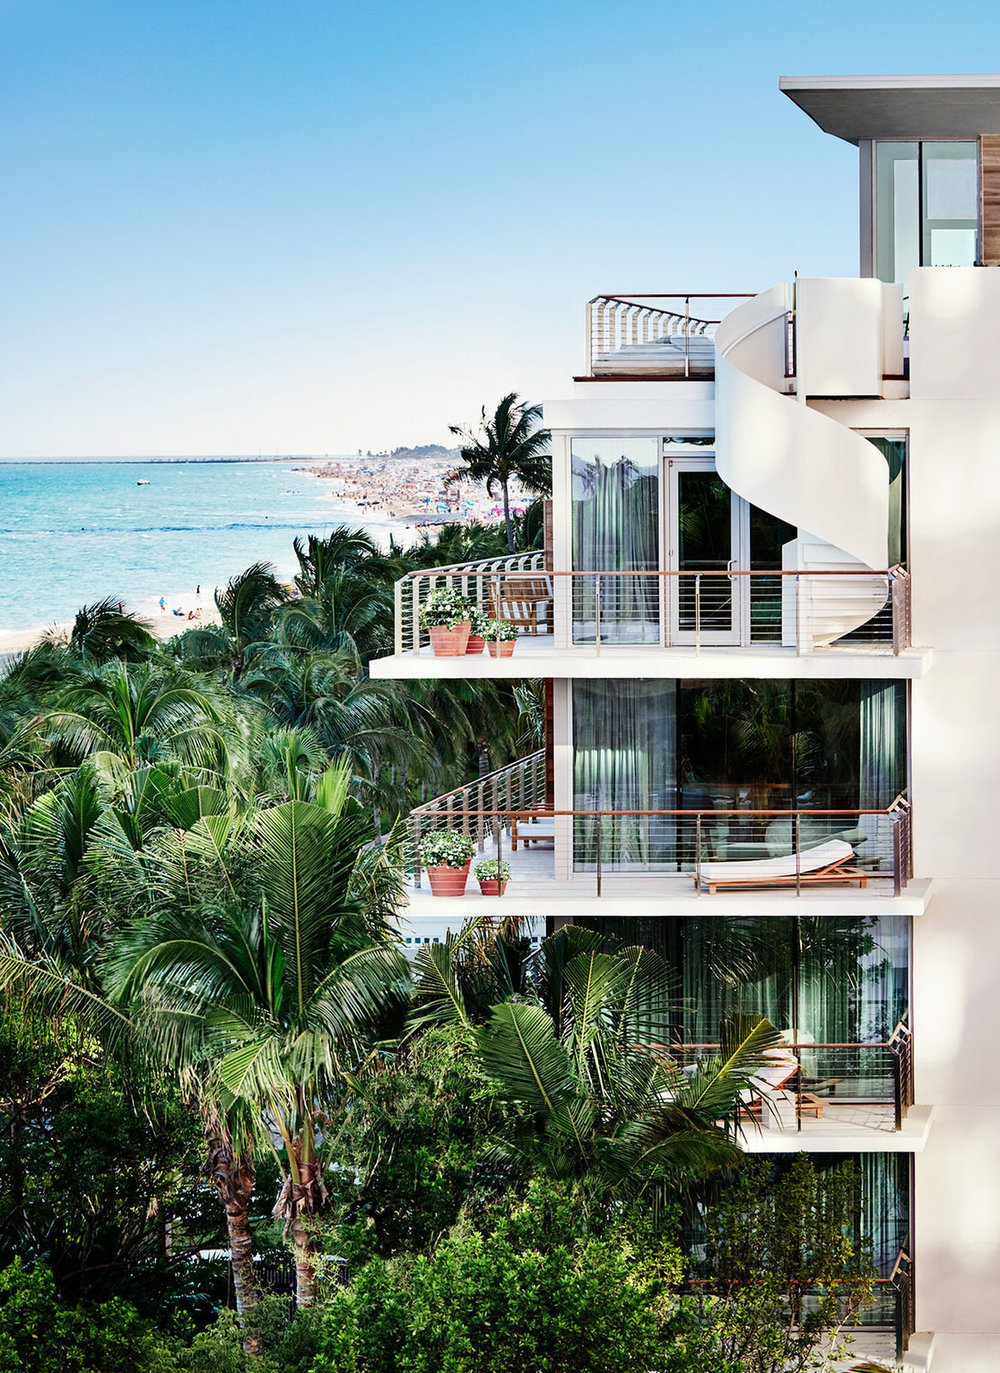 Bungalows. Courtesy of The Miami Beach EDITION.